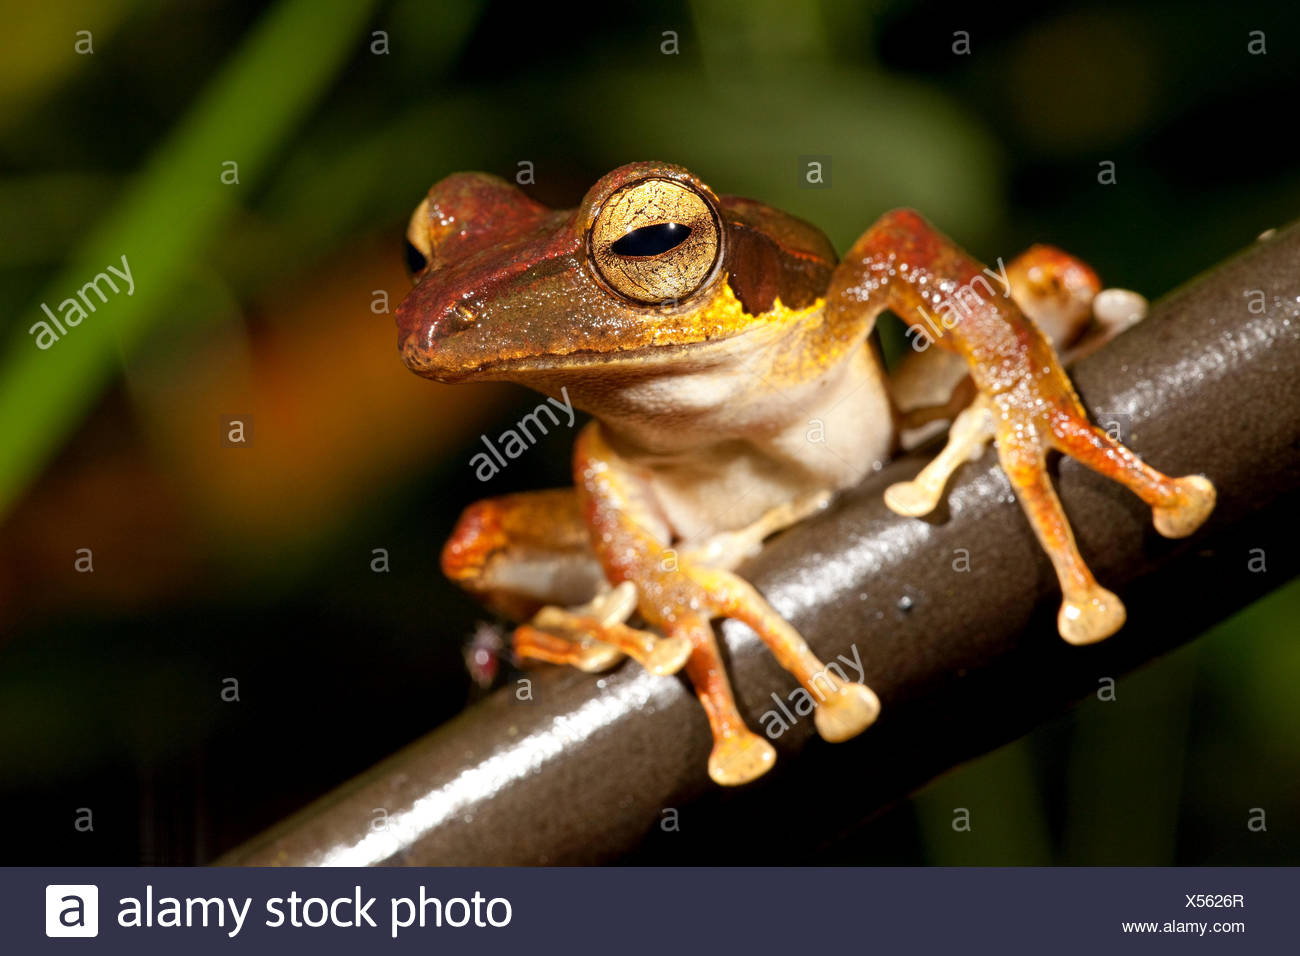 Foto van een boomkikker zittend op een stengel; Photo of a dark-eared tree frog sitting on a branch; - Stock Image